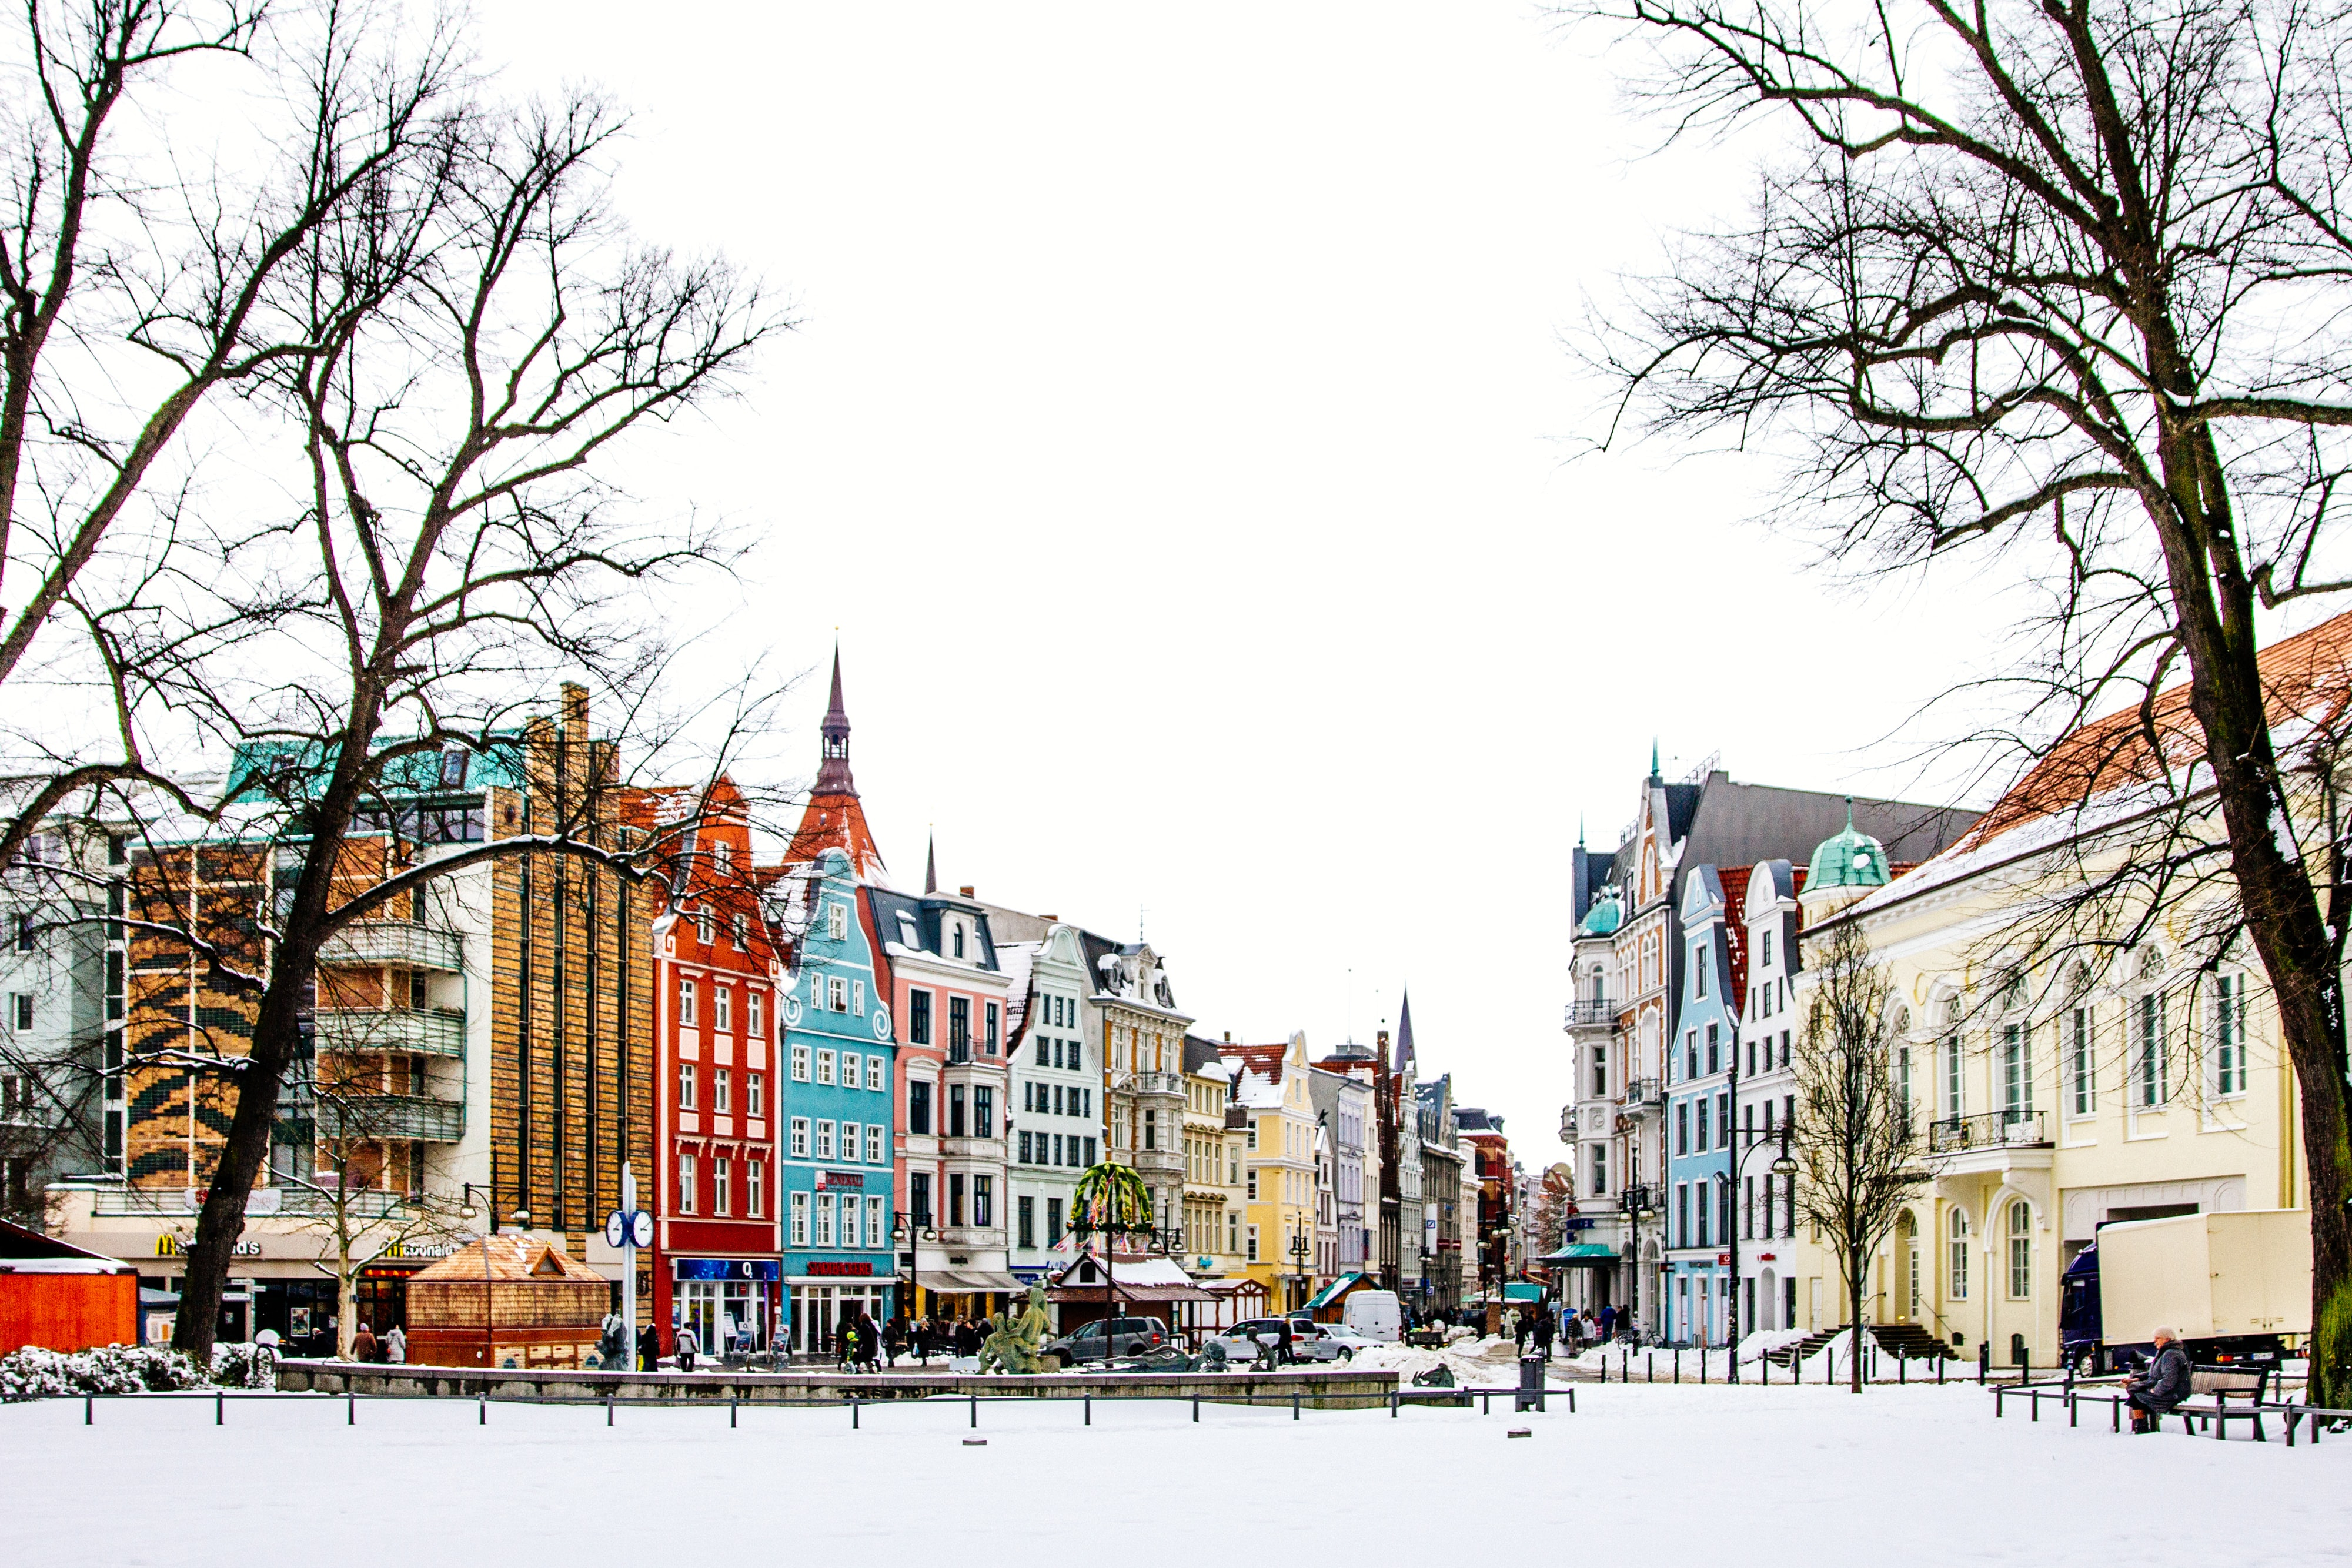 Winter in Rostock